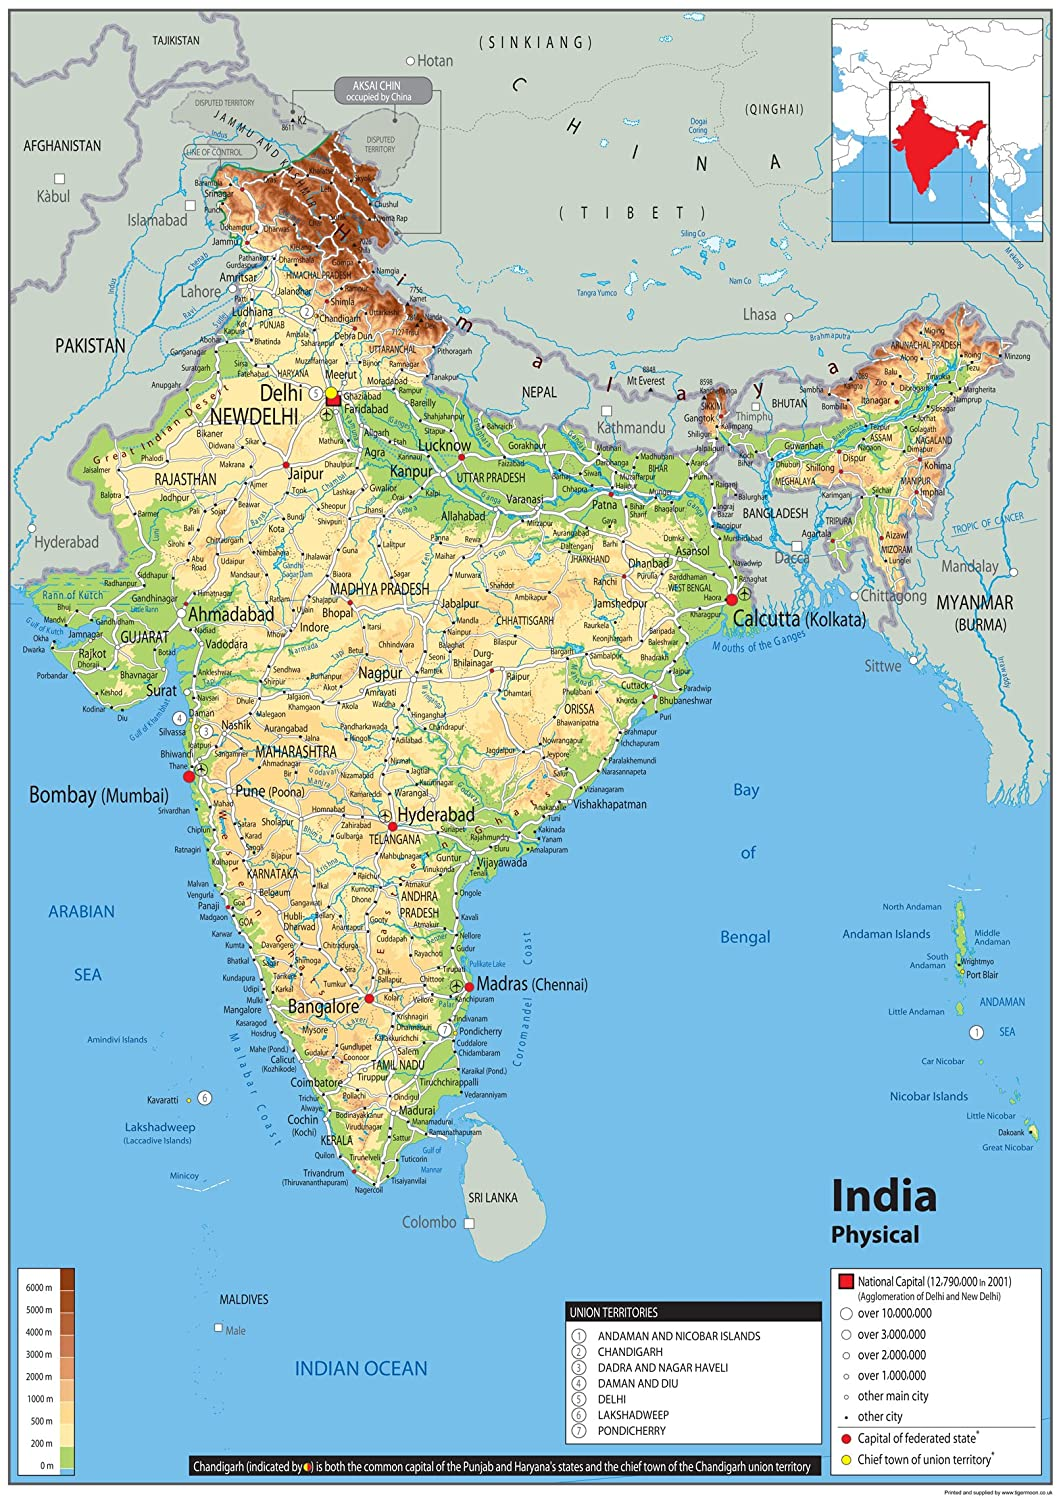 India Physical Map - Paper Laminated (A0 Size 84.1 x 118.9 cm) on clear mexico map, clear georgia map, clear dominican republic map, clear pakistan map, clear europe map, clear russia map, clear fiji map, clear south america map, clear turkey map, clear scotland map, clear asia map, clear ecuador map, clear norway map, clear south korea map, clear kenya map, clear africa map, clear jamaica map, clear indus river map, clear middle east map, clear world map,